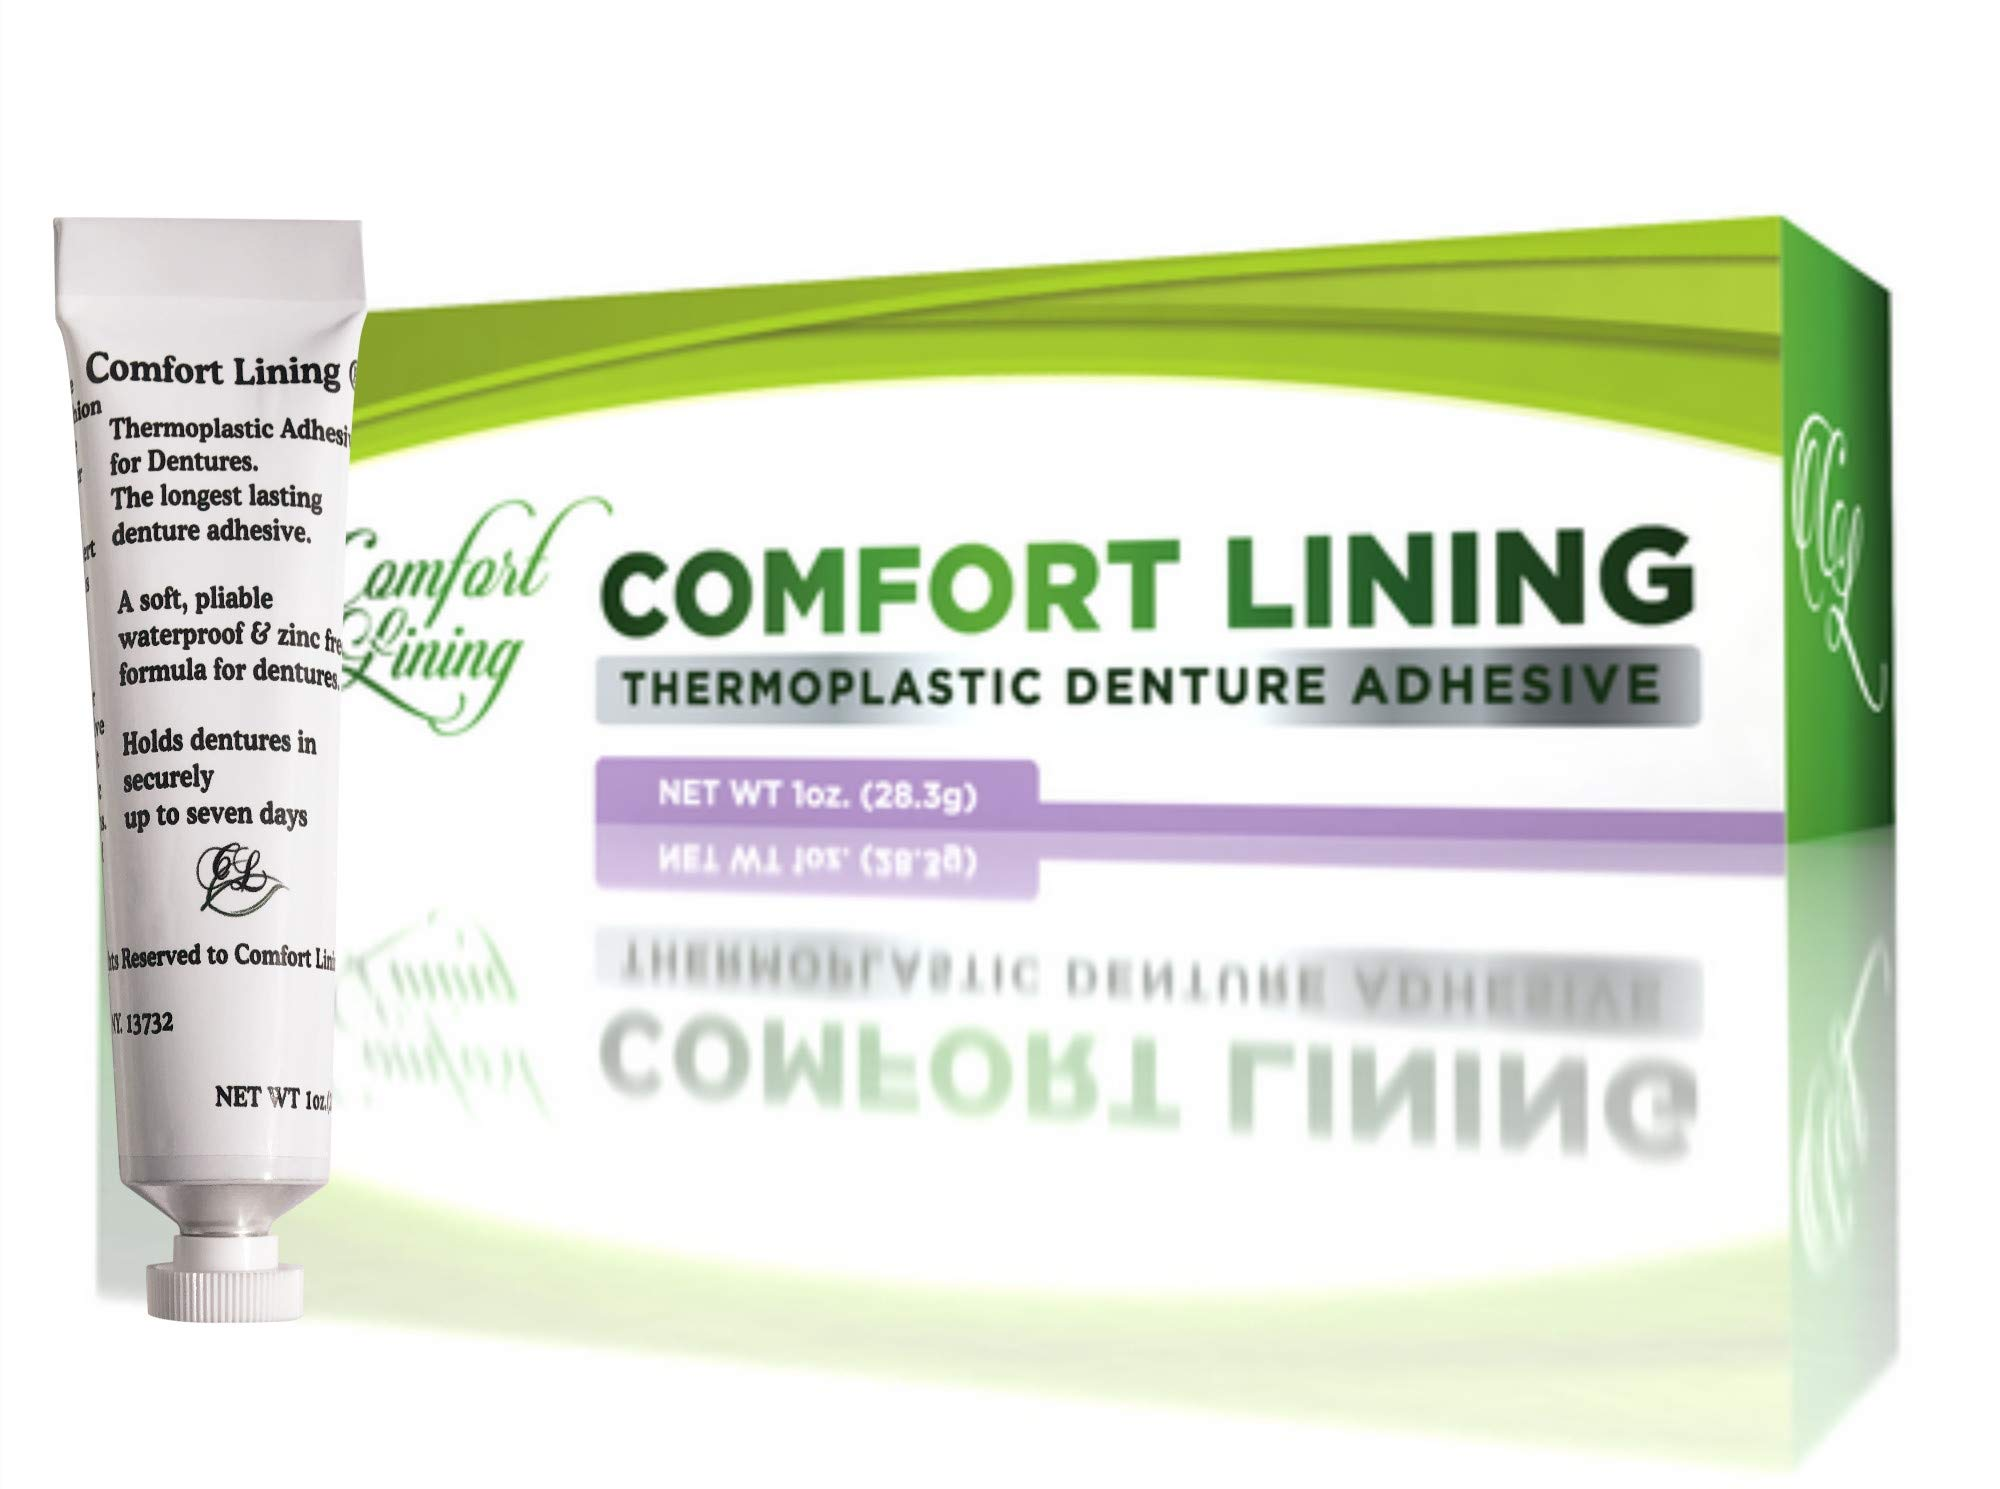 Comfort Lining a Secure Thermoplastic Denture Adhesive Used for Tightening Loose Dentures 1 oz. 28 grams